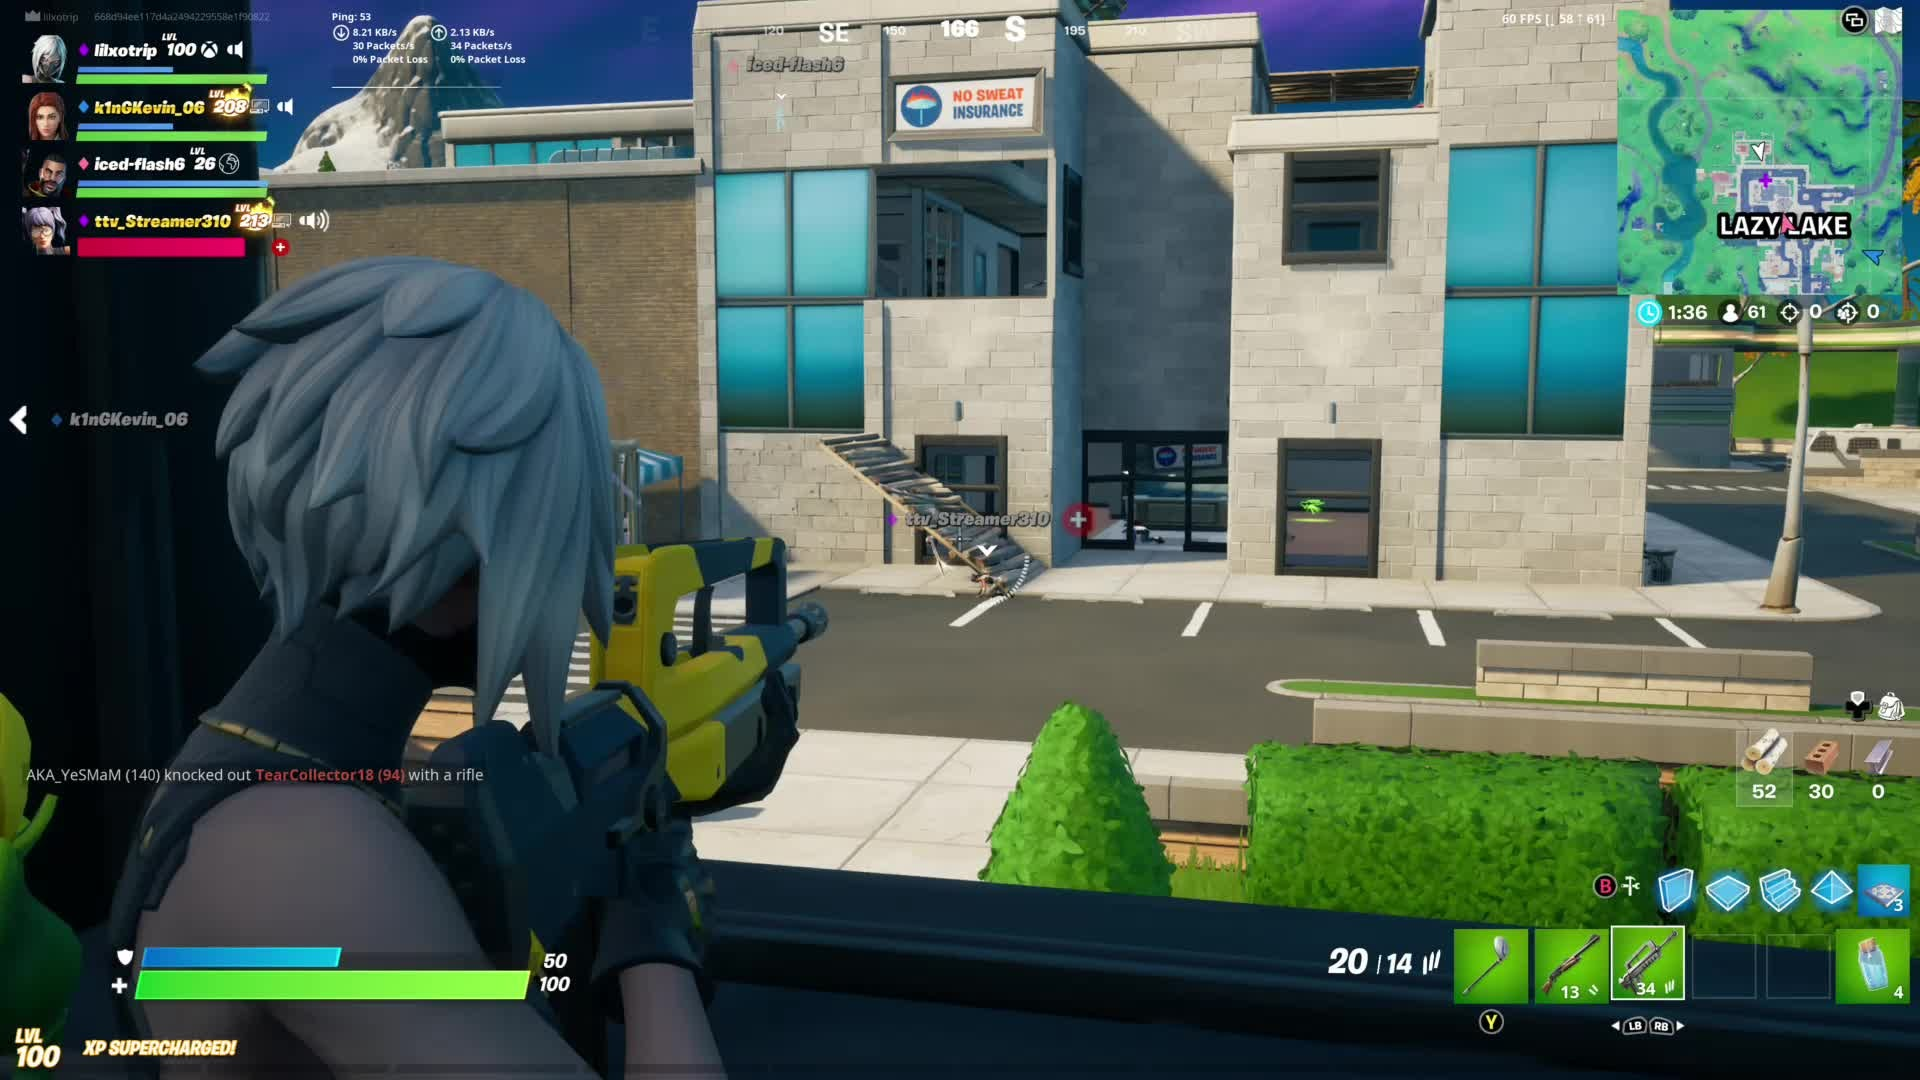 Fortnite: Battle Royale - timbers:shivered😰 video cover image 0